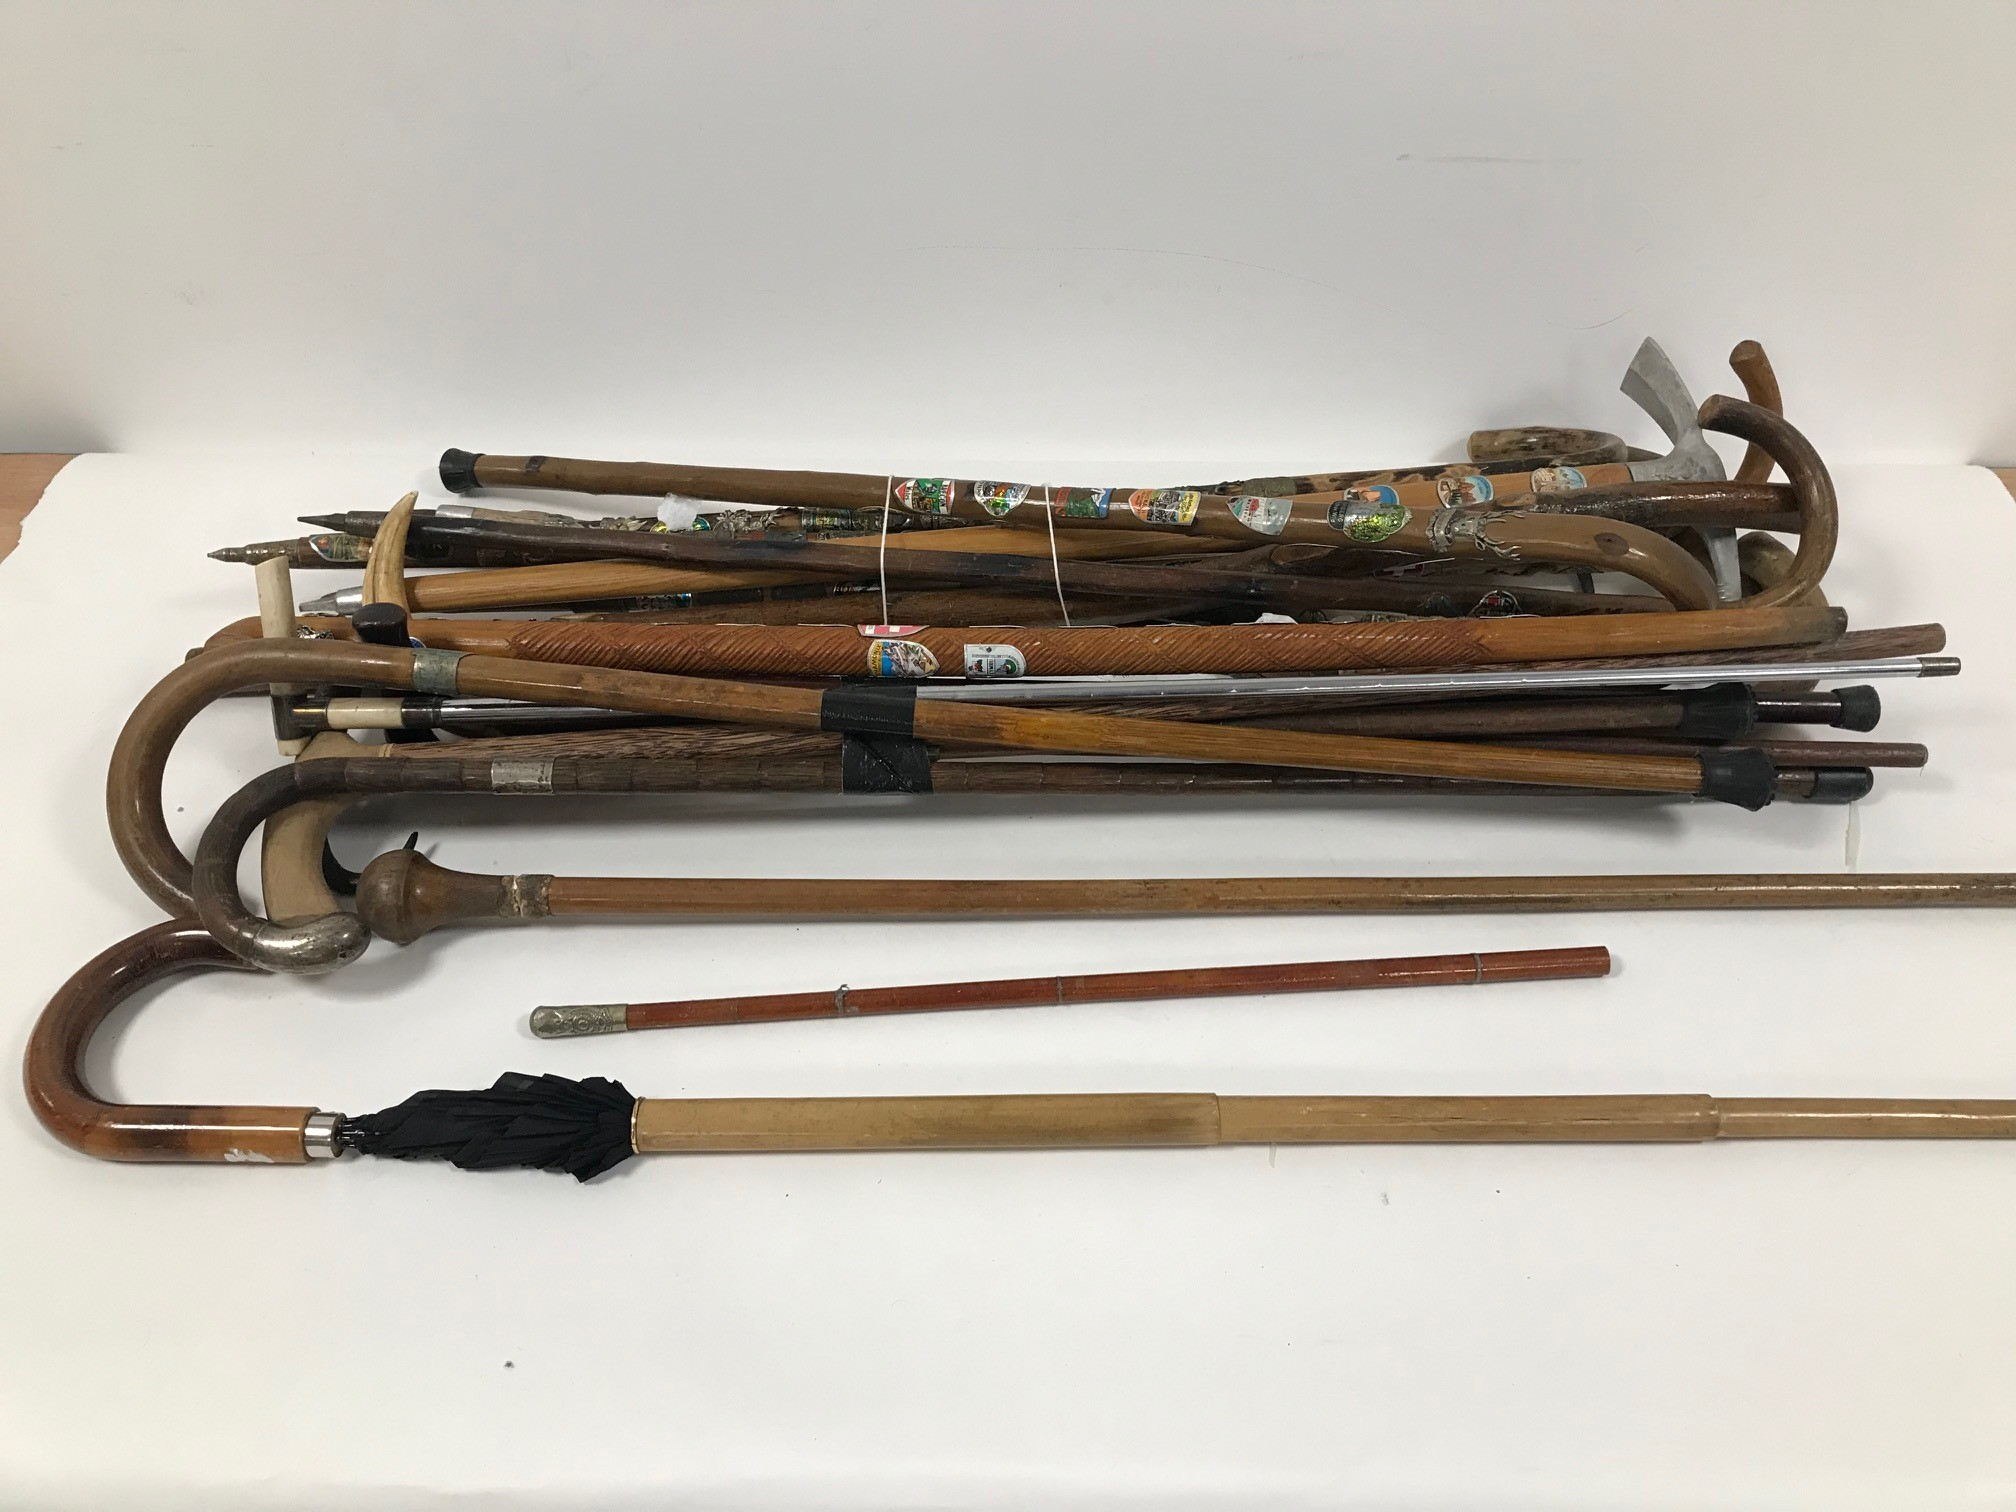 A collection of walking stick and canes, including a walking stick with removeable shaft to reveal